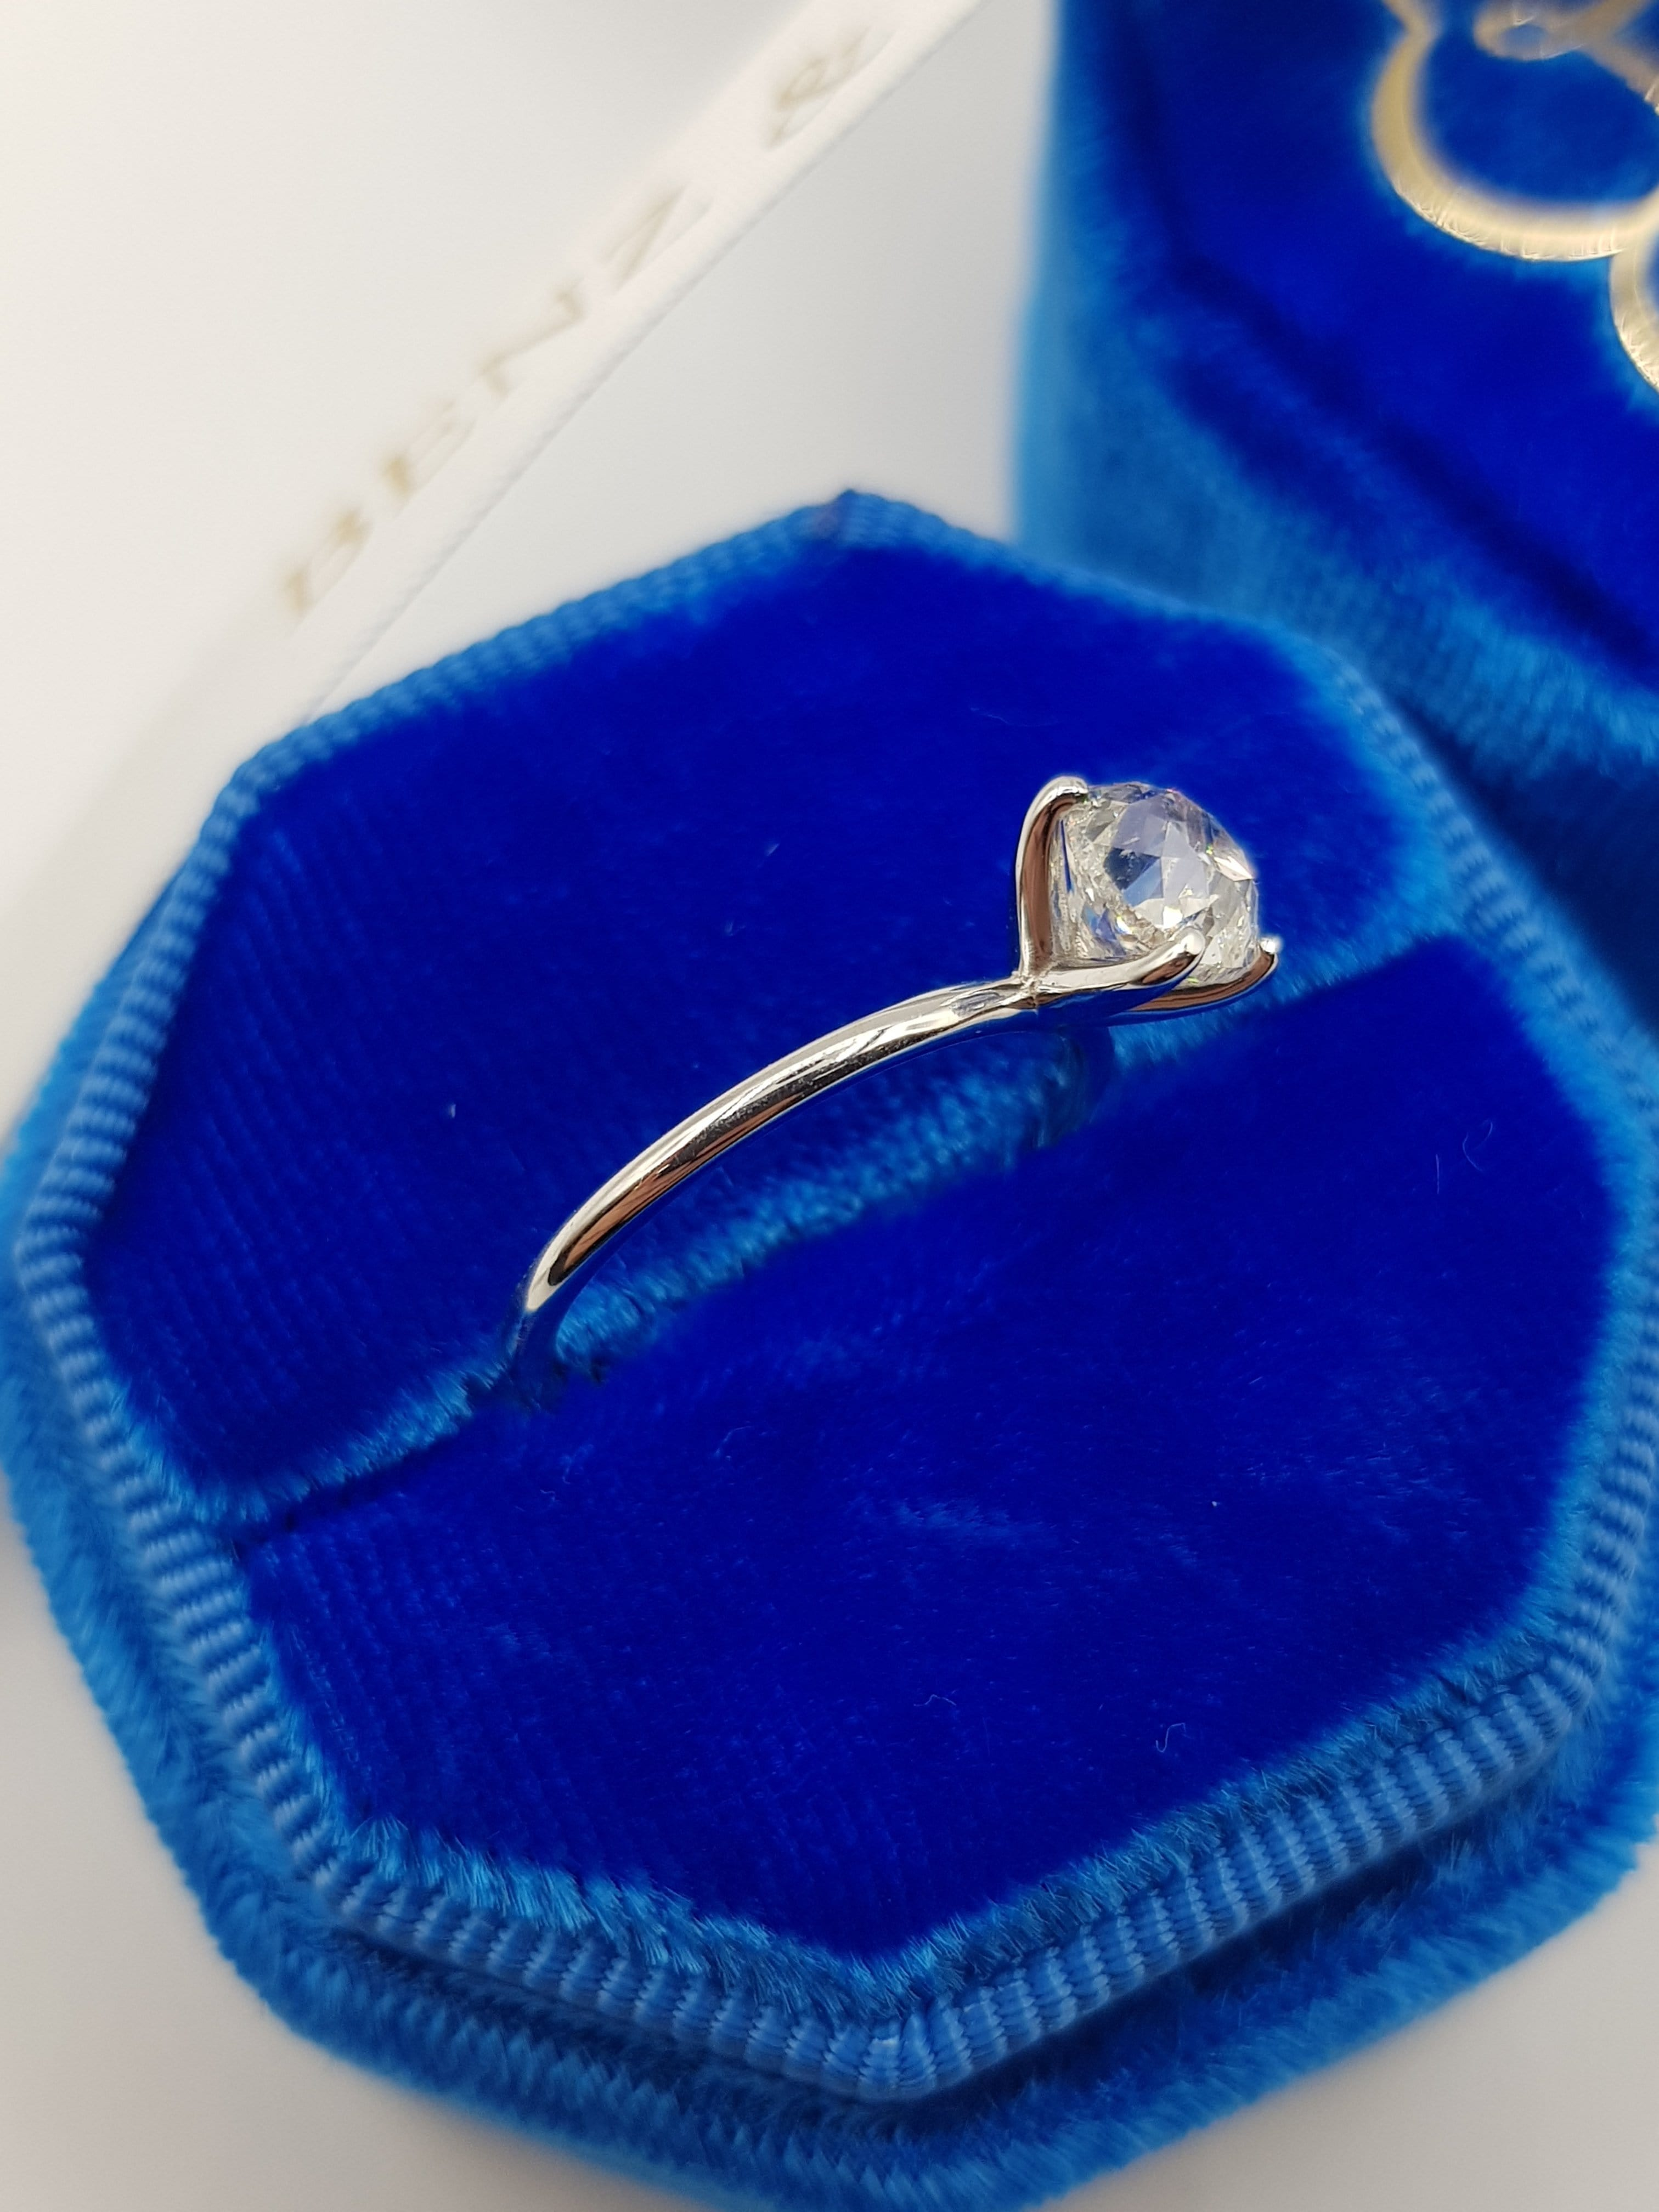 1.10 Carats Old Mine Cushion Cut Solitaire Diamond Engagement Ring